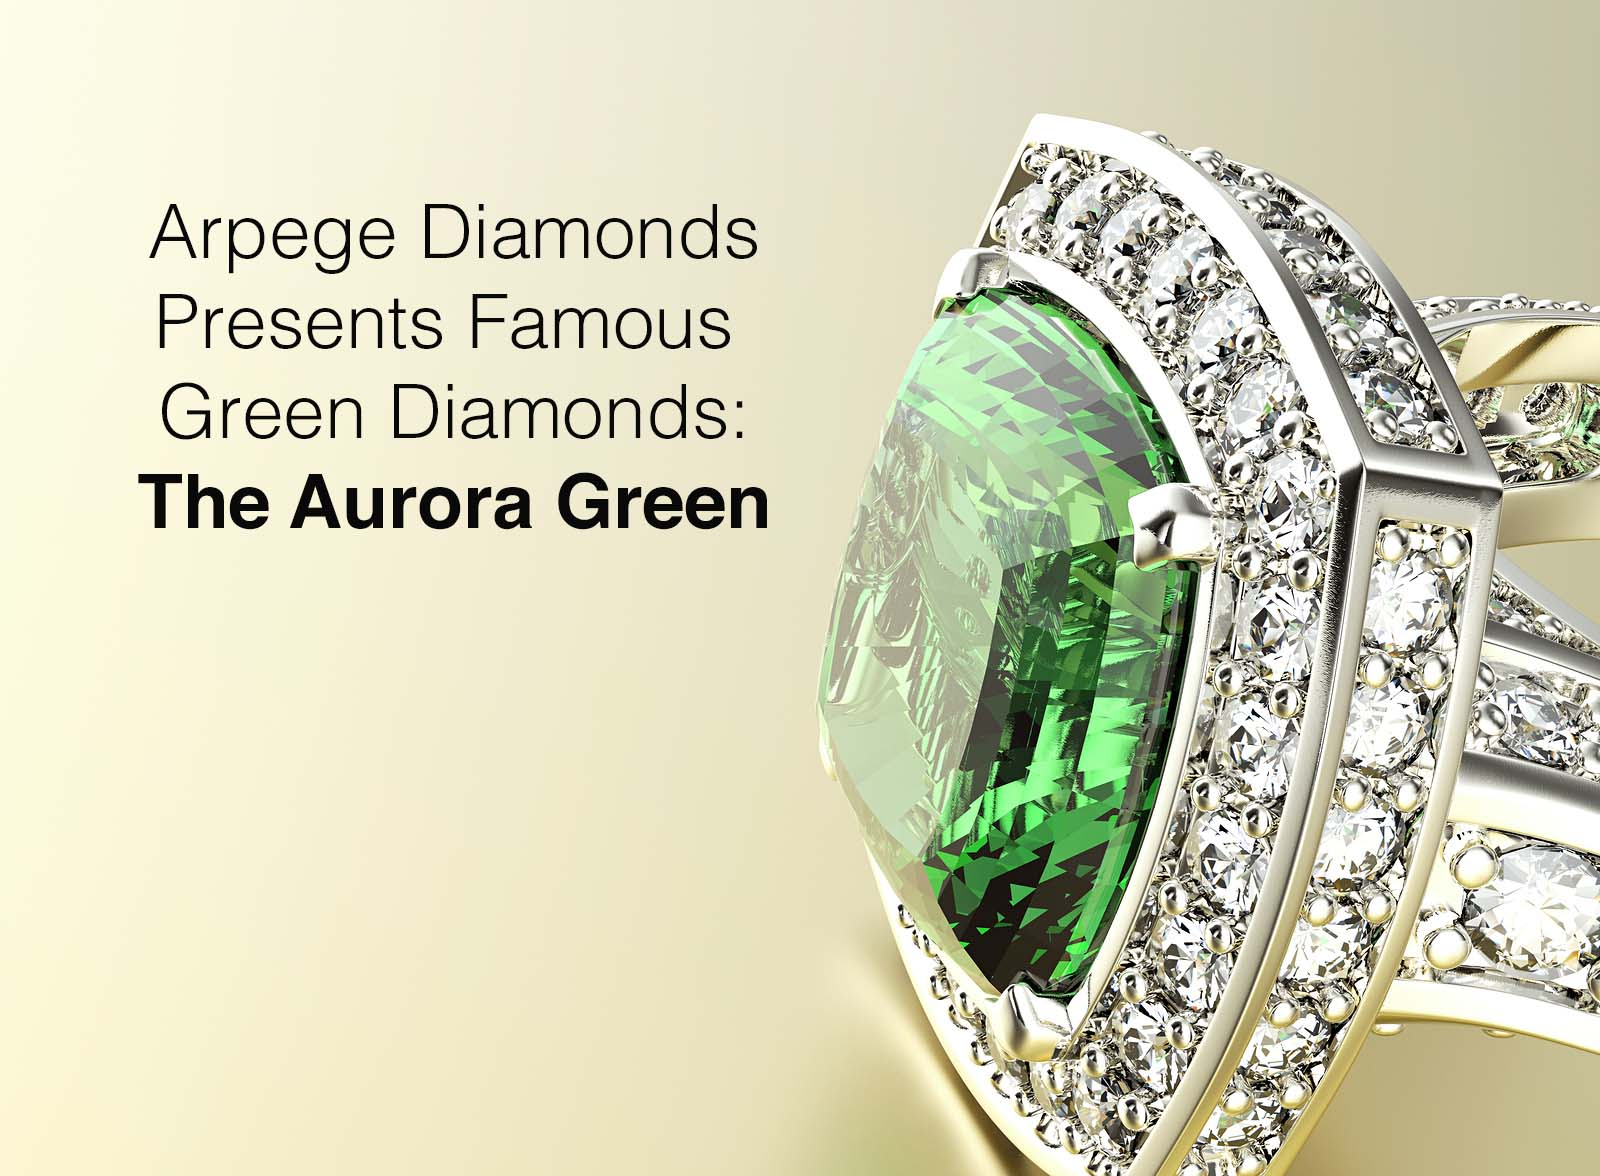 aurora_green_diamonds.jpg